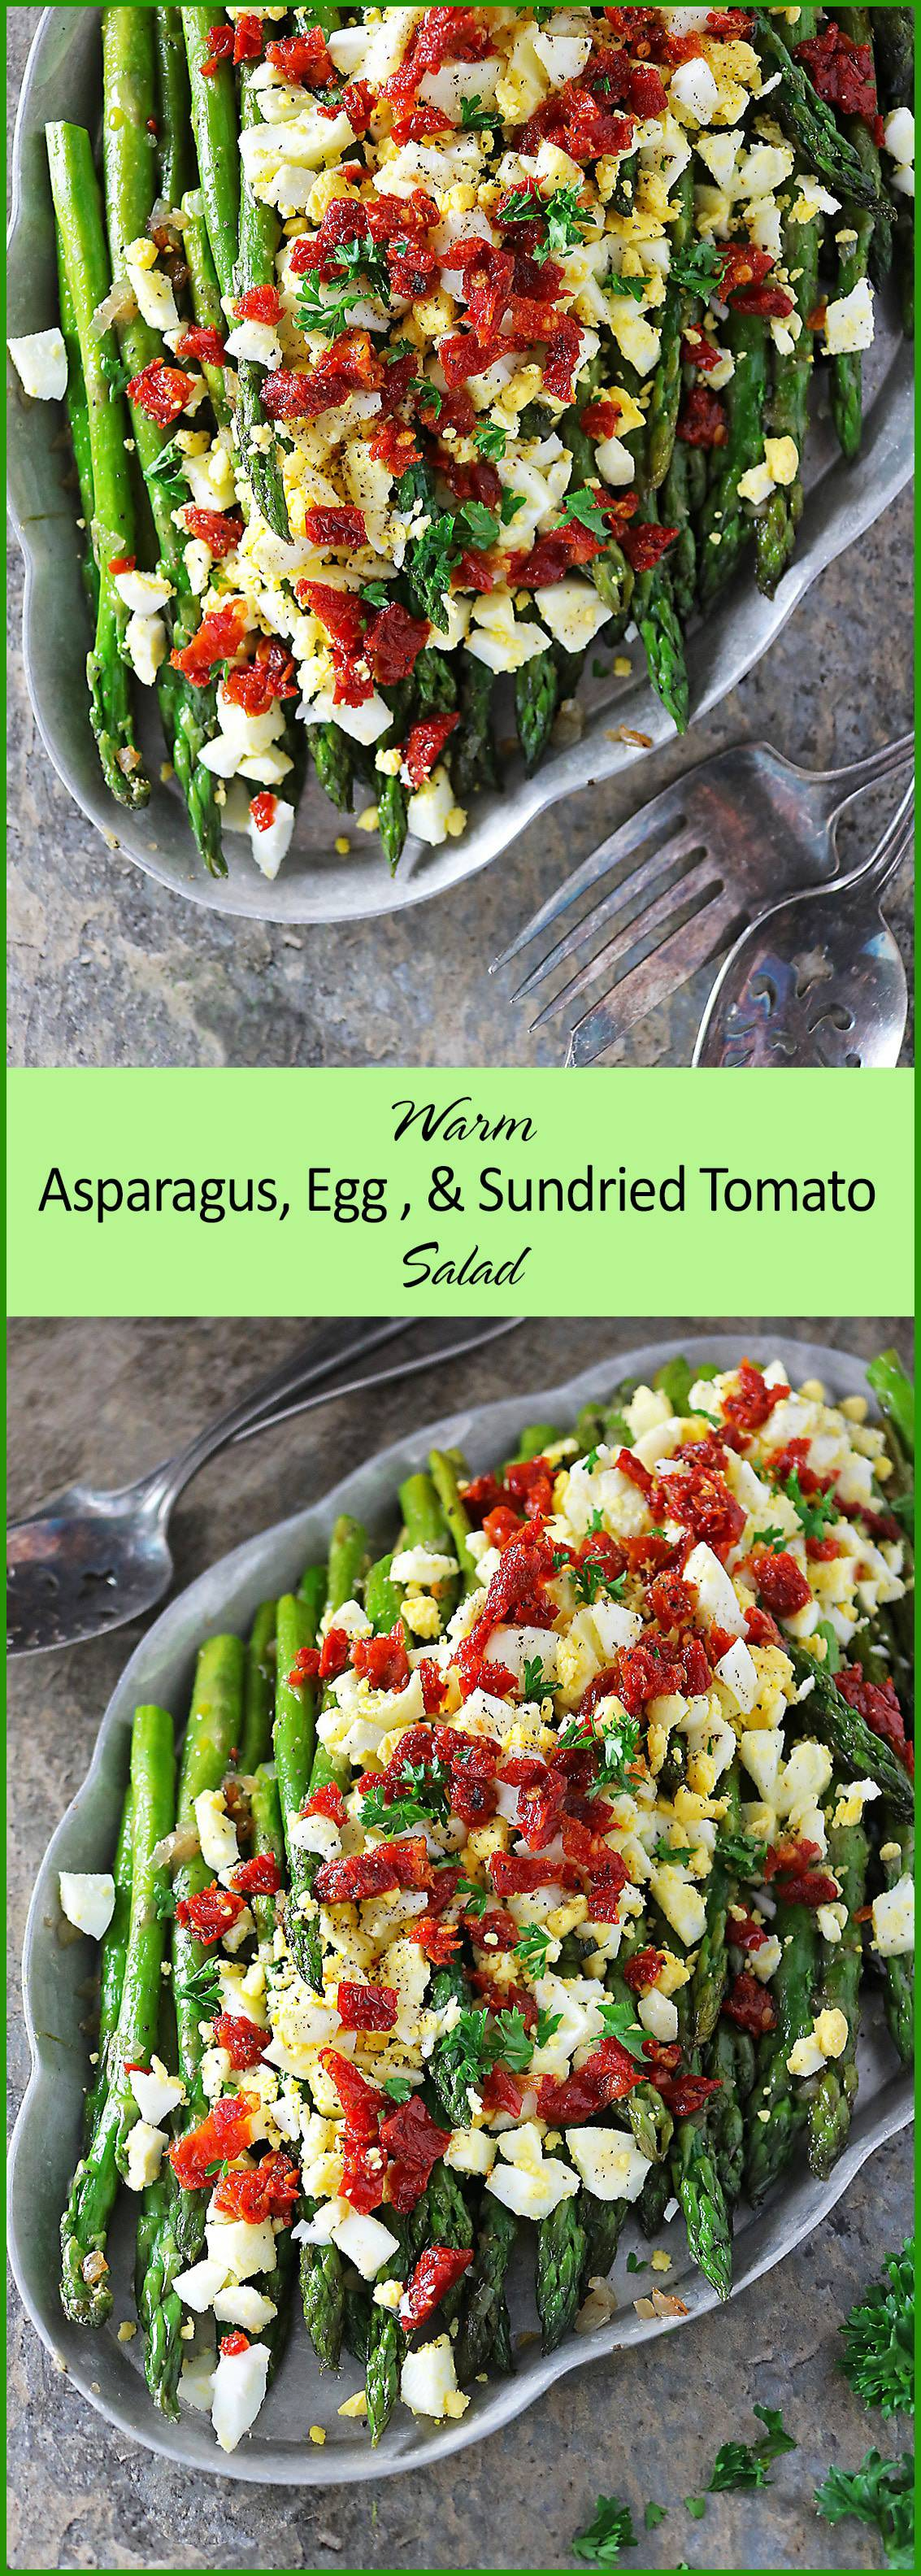 This Sautéed Asparagus Egg Salad with shallots and sundried tomatoes would make a delicious side dish your family would enjoy at a weeknight dinner. Or, whip it up for the mom in your life this Mother's Day!